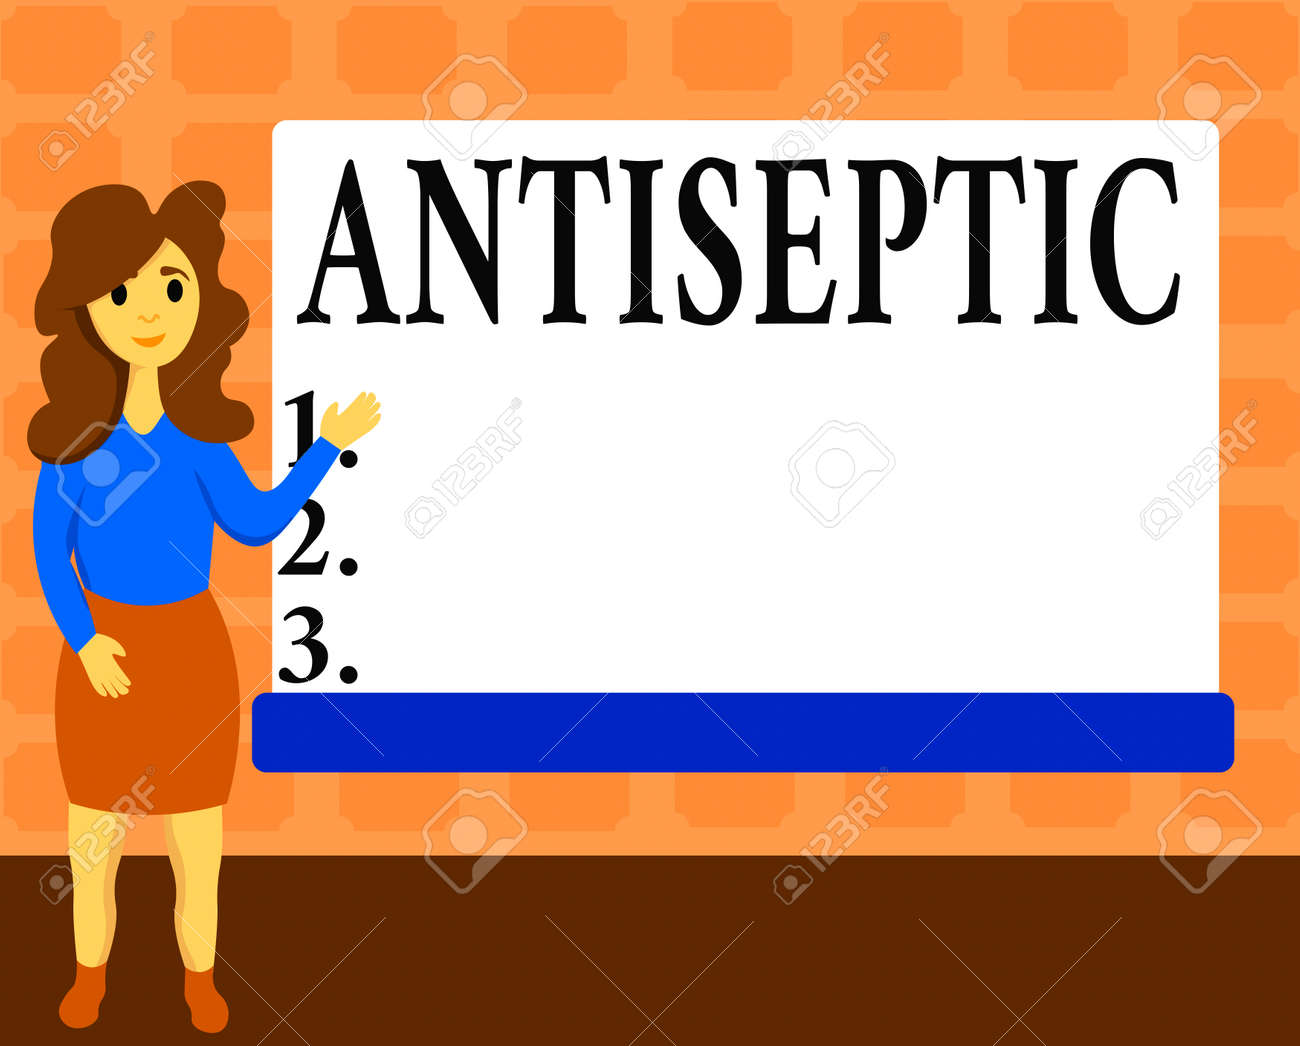 Text sign showing Antiseptic. Business photo showcasing antimicrobial agents that delays or completely eliminate the microorganism Female Hu analysis Standing Hand Presenting Rectangular Blank Whiteboard - 150772222